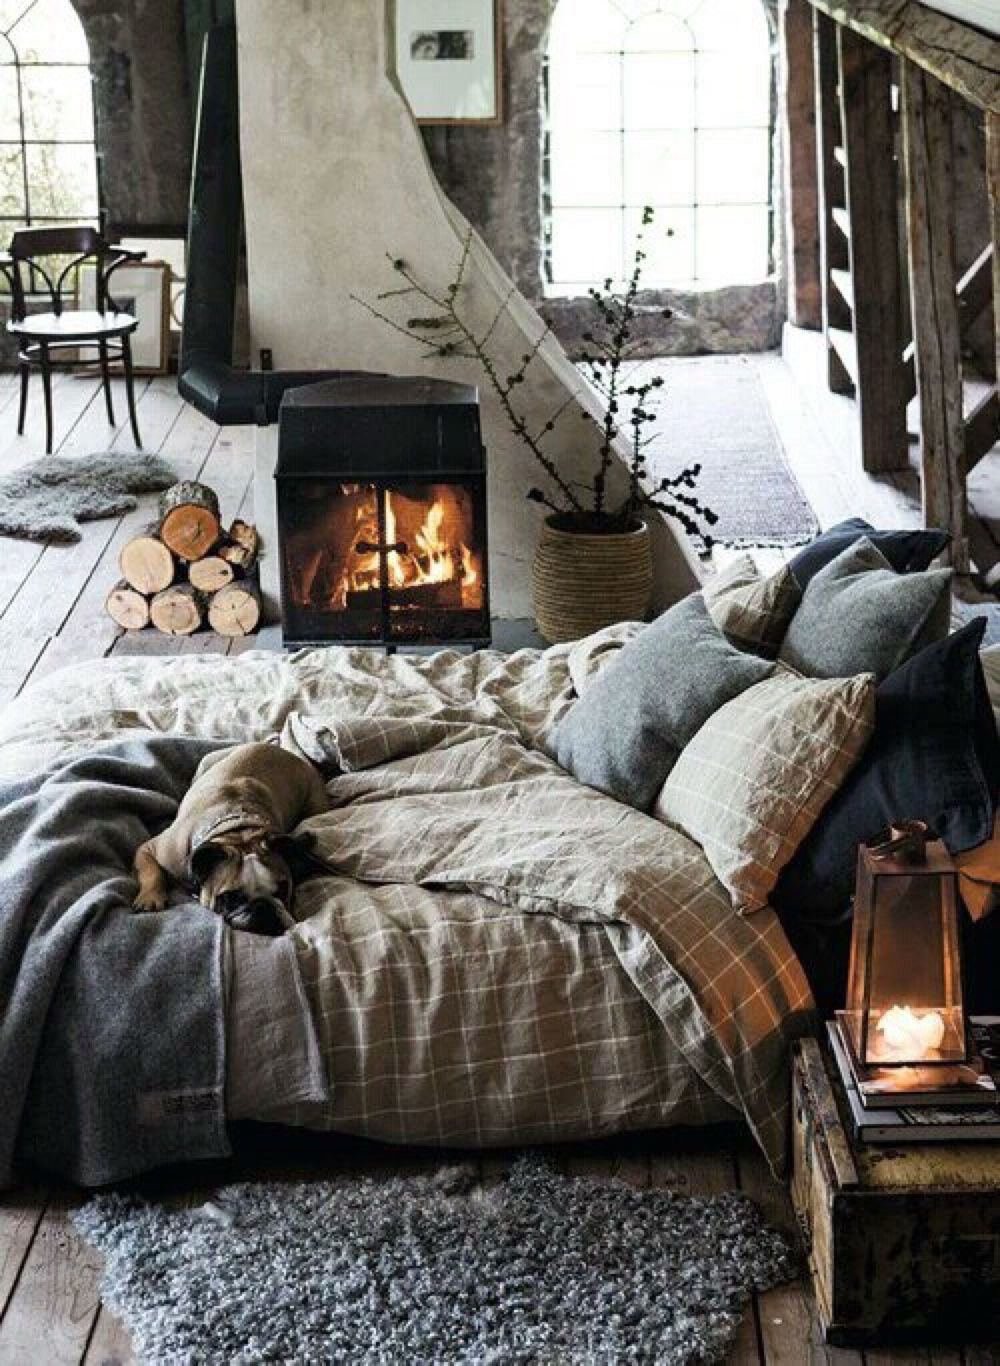 Captivating Bedroom | Tumblr